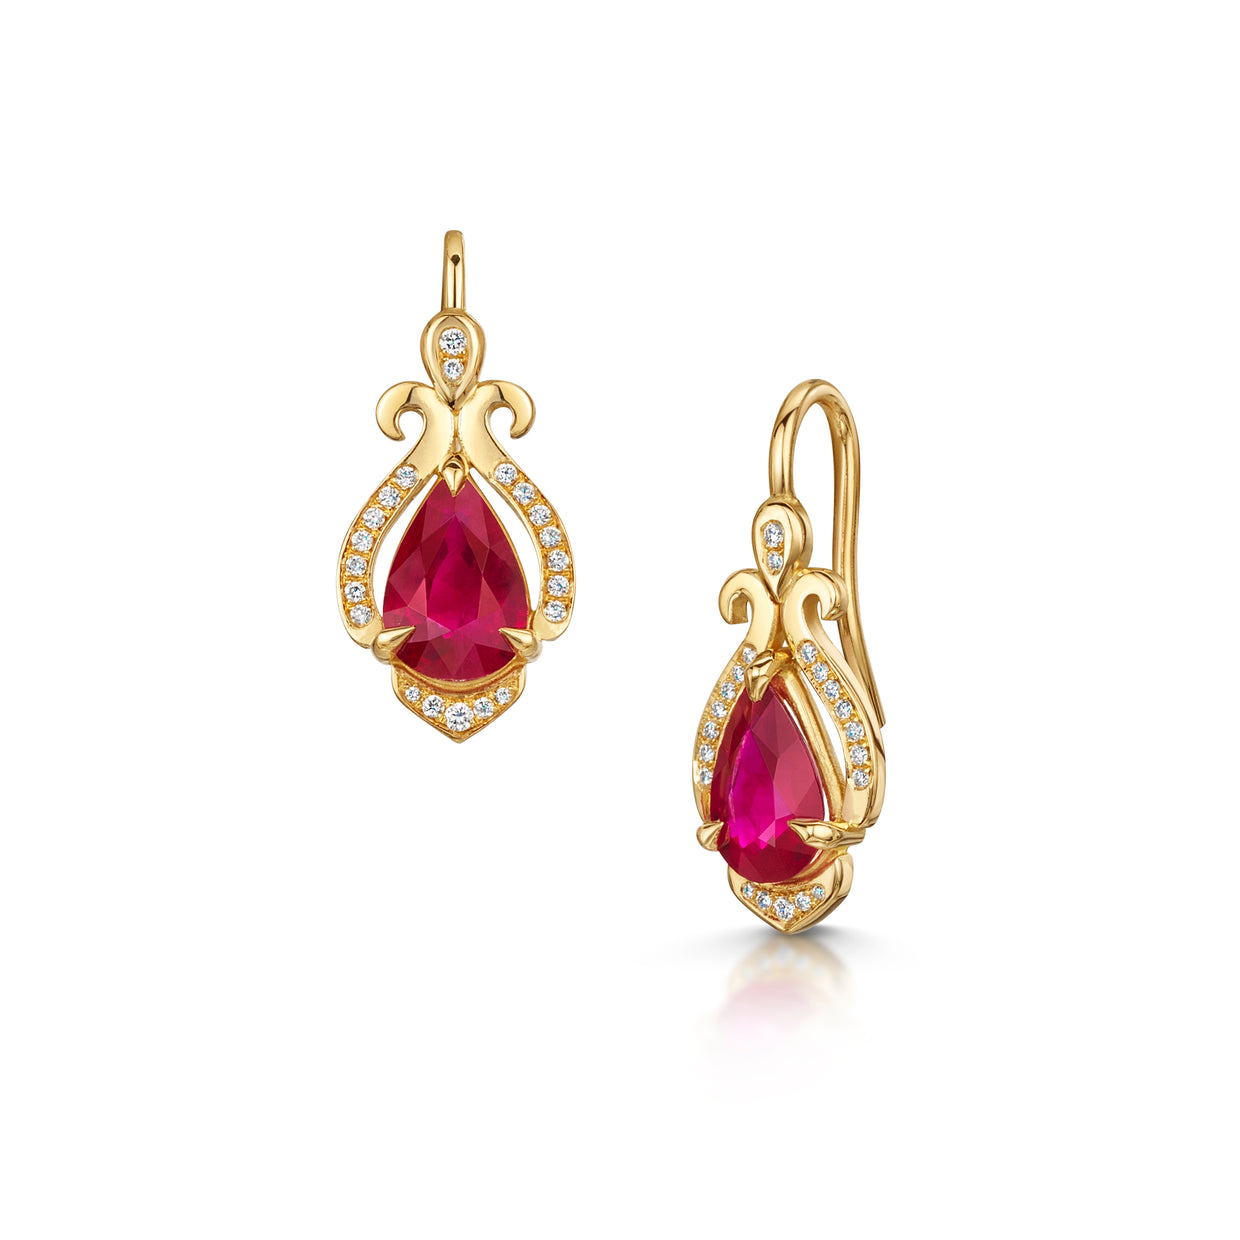 22ct Scottish Gold Ruby and Diamond Earrings - Hamilton & Inches